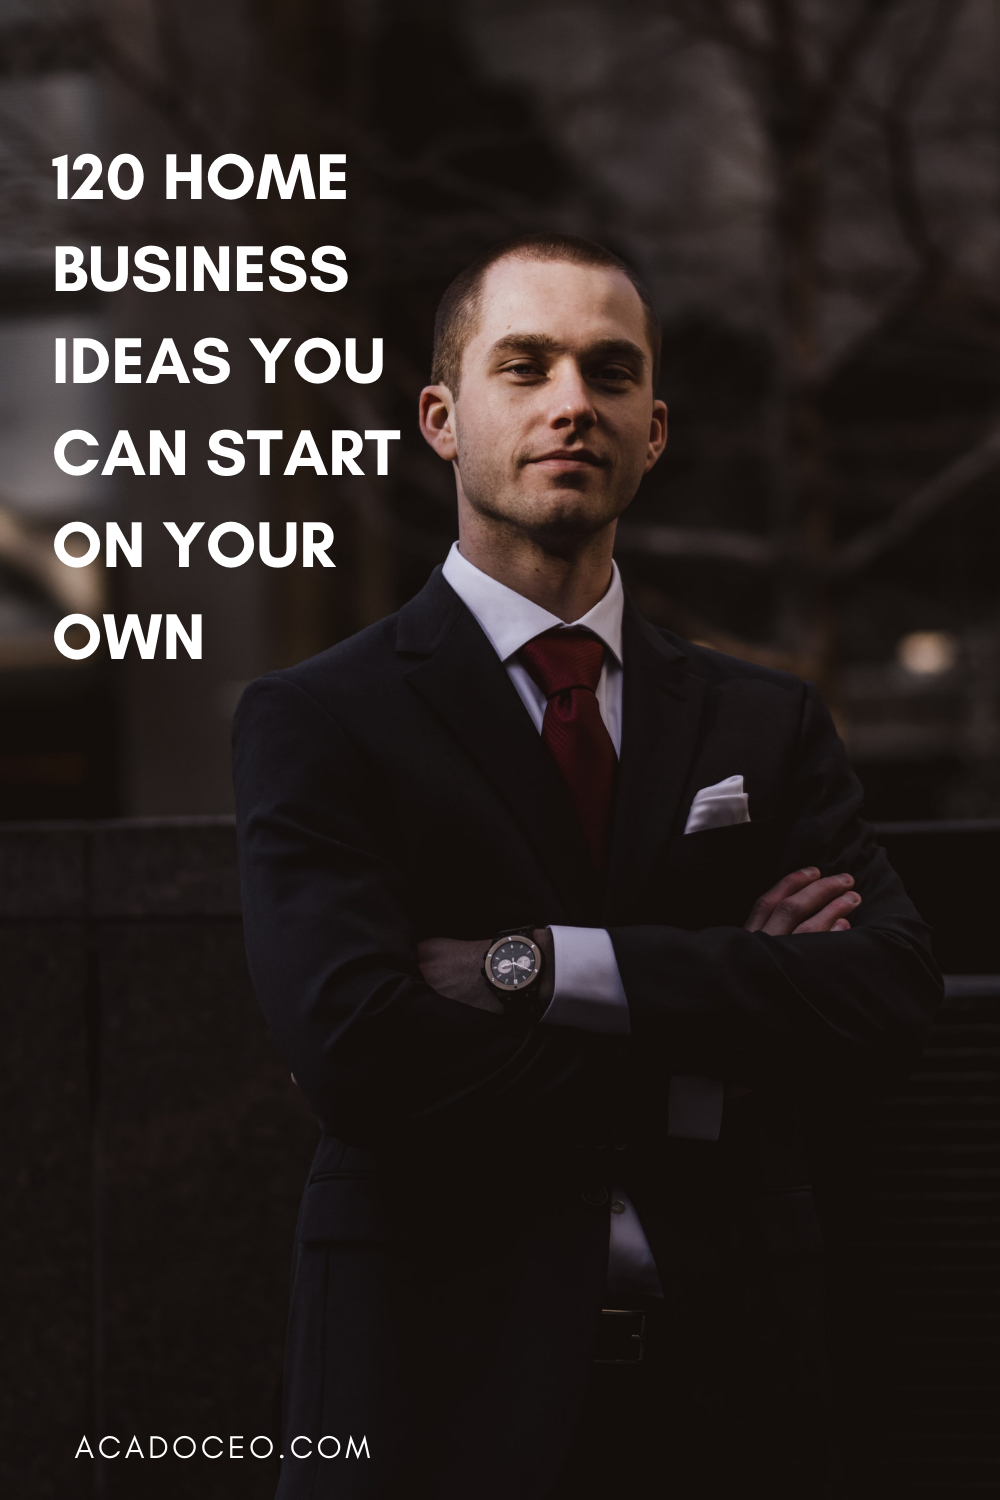 120 HOME BUSINESS IDEAS YOU CAN START ON YOUR OWN